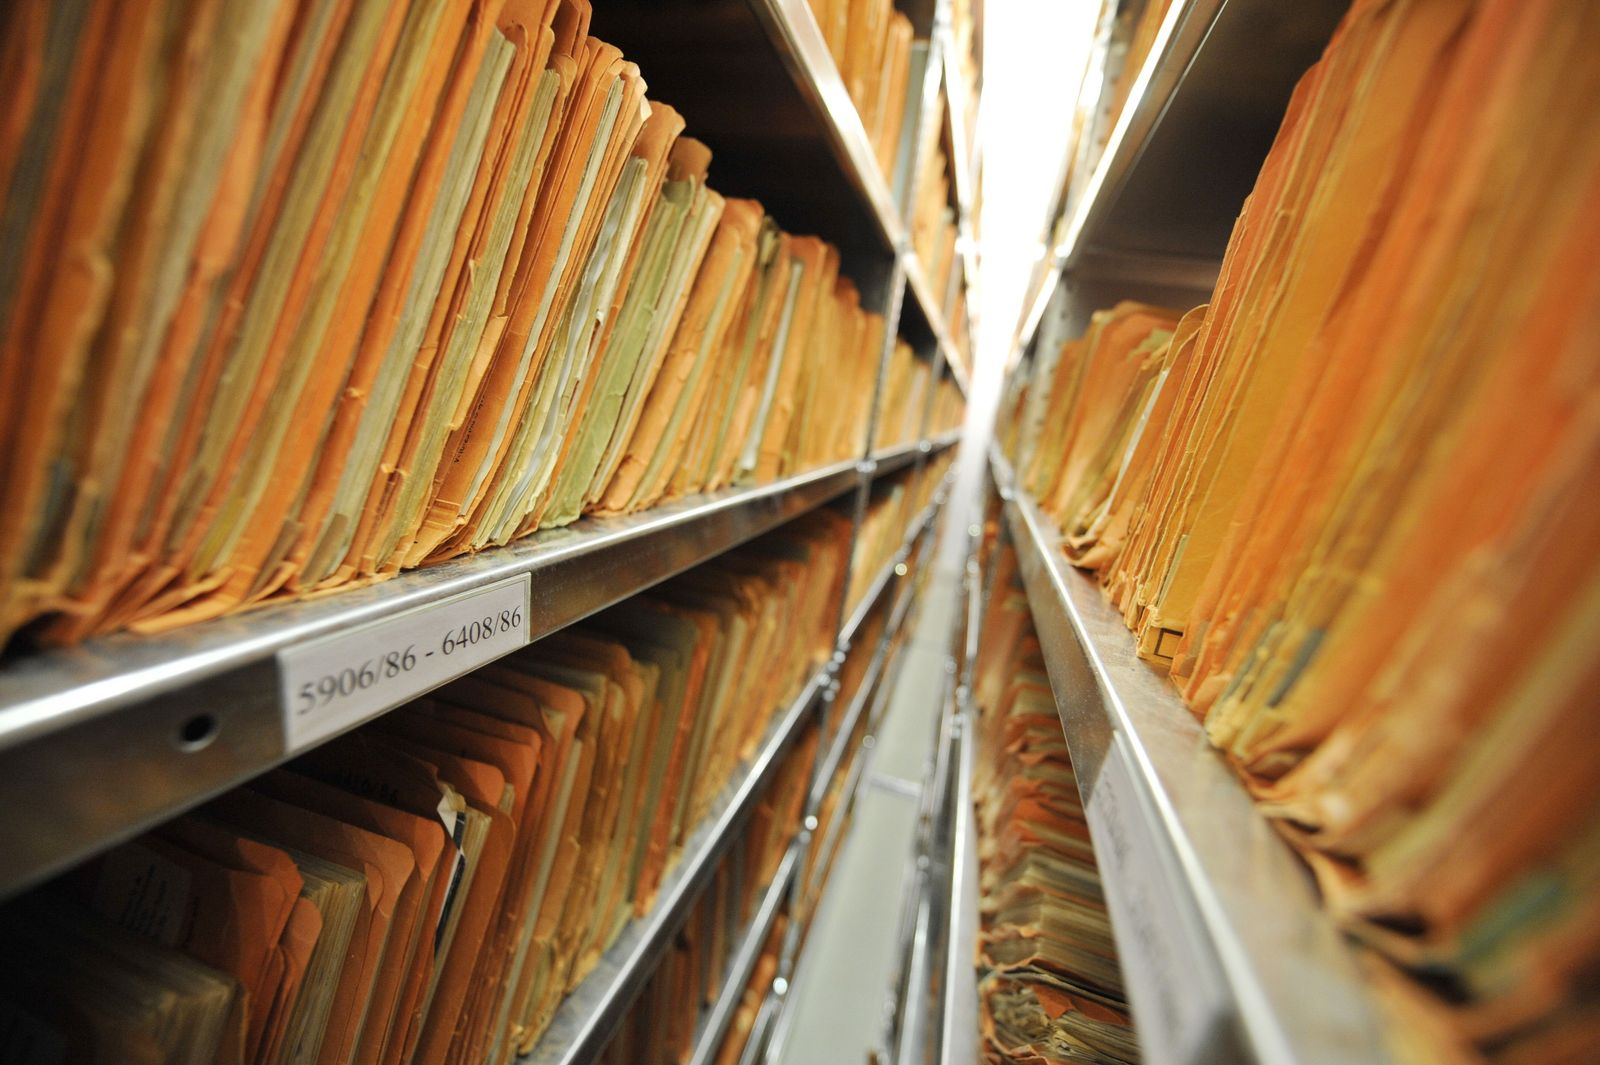 GERMANY-HISTORY-GDR-EAST-STASI-ARCHIVES